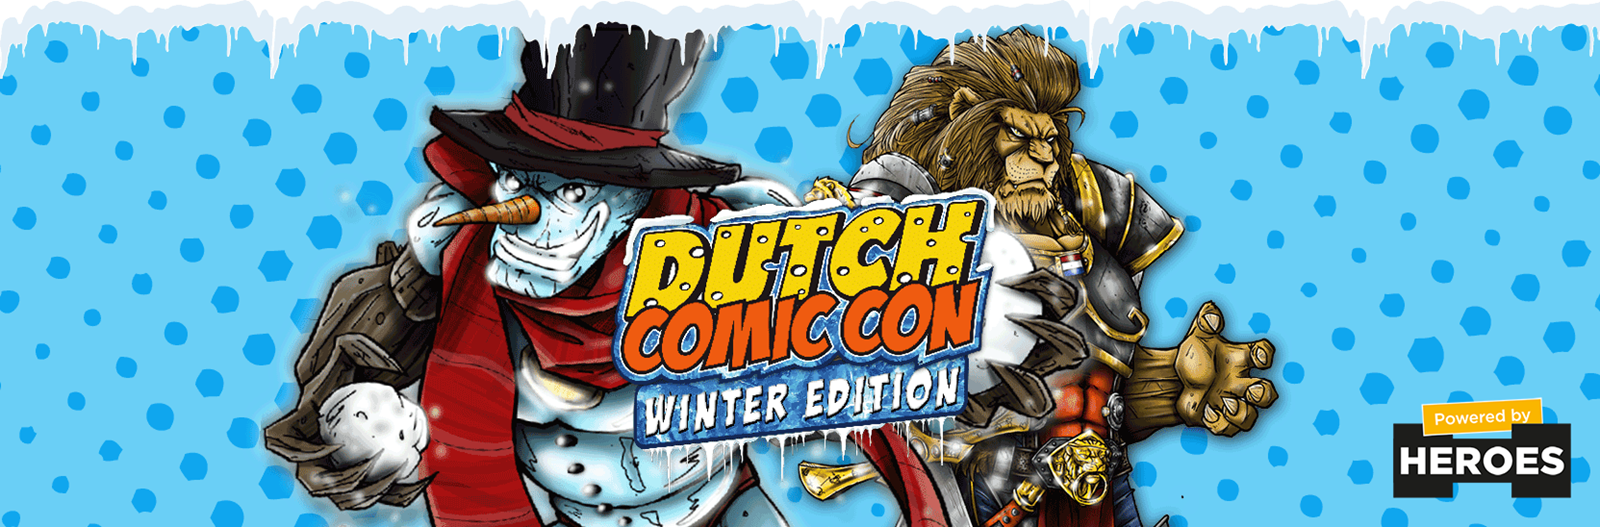 Dutch Comic Con: Winter Edition